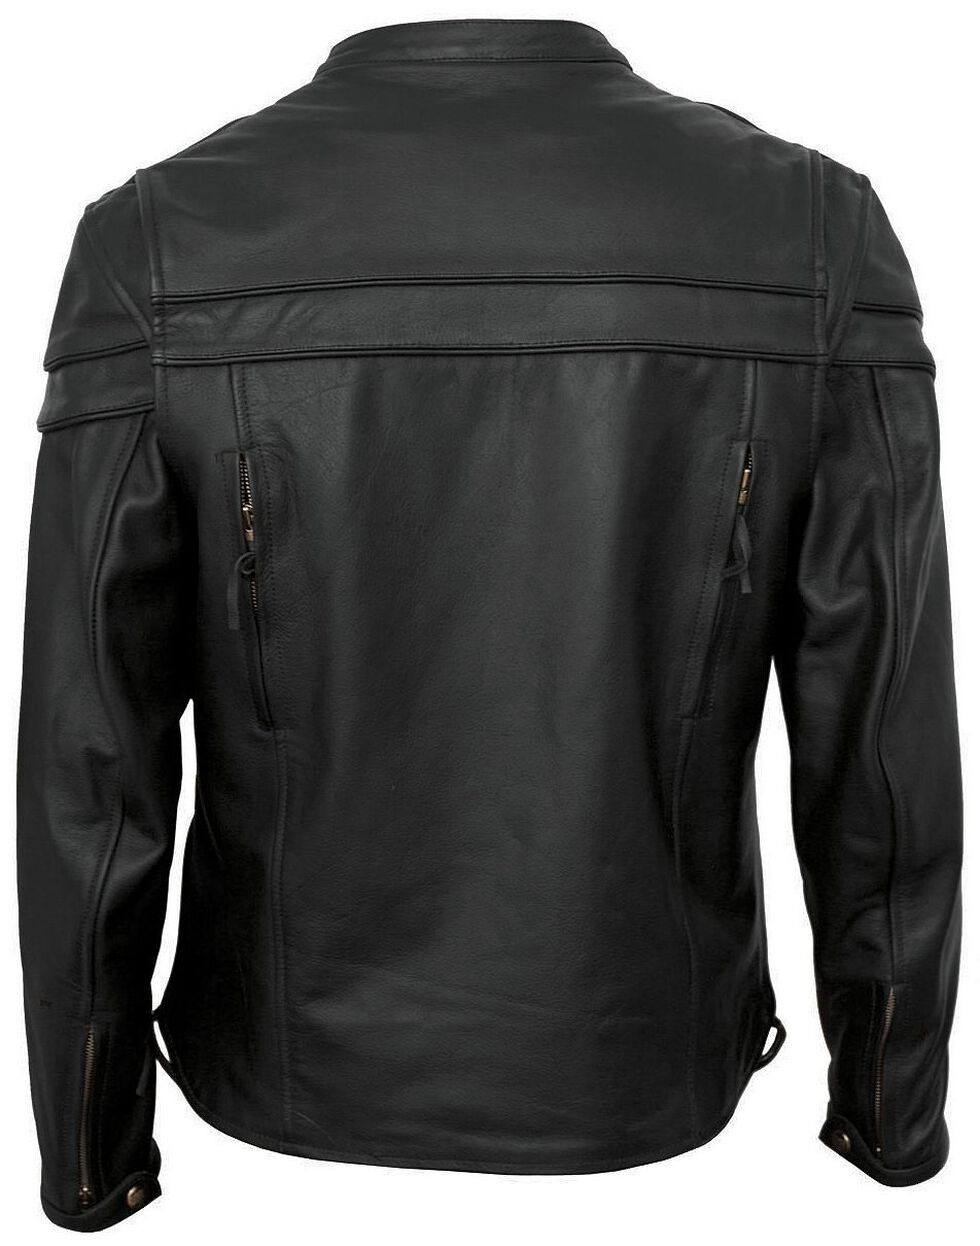 Interstate Leather Scooter Jacket - Big & Tall, Black, hi-res